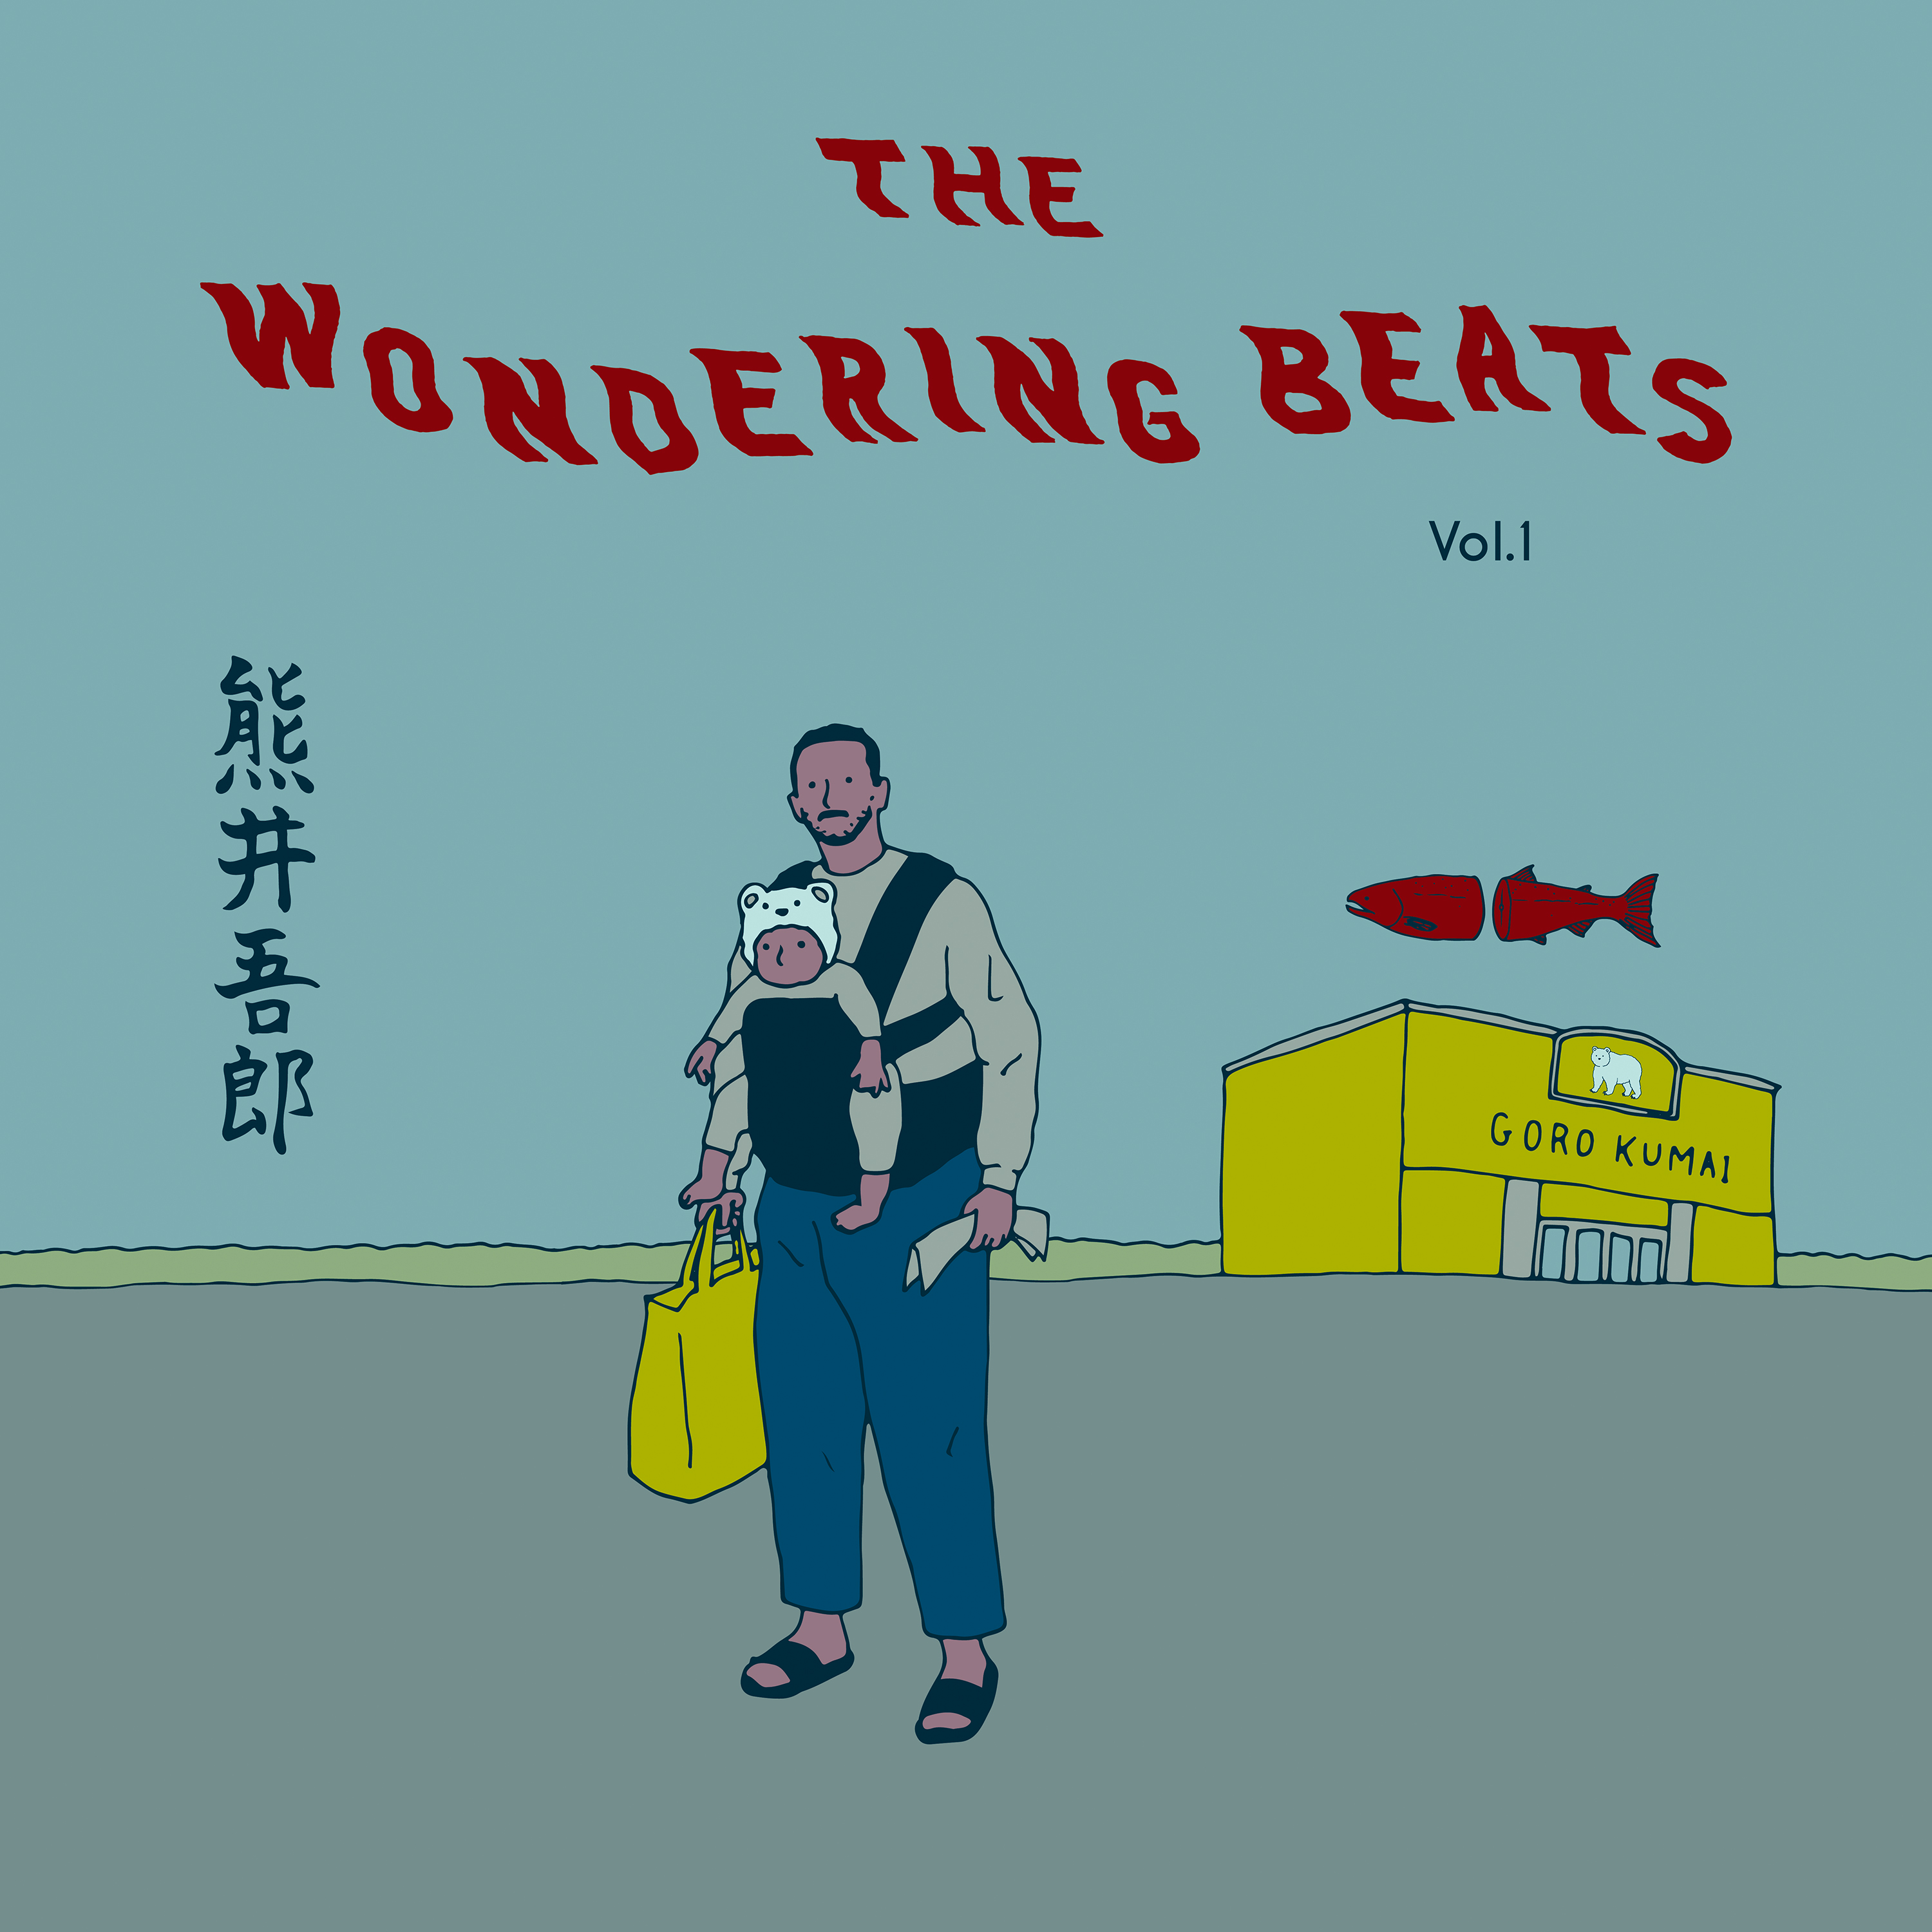 The Wondering Beats vol.1